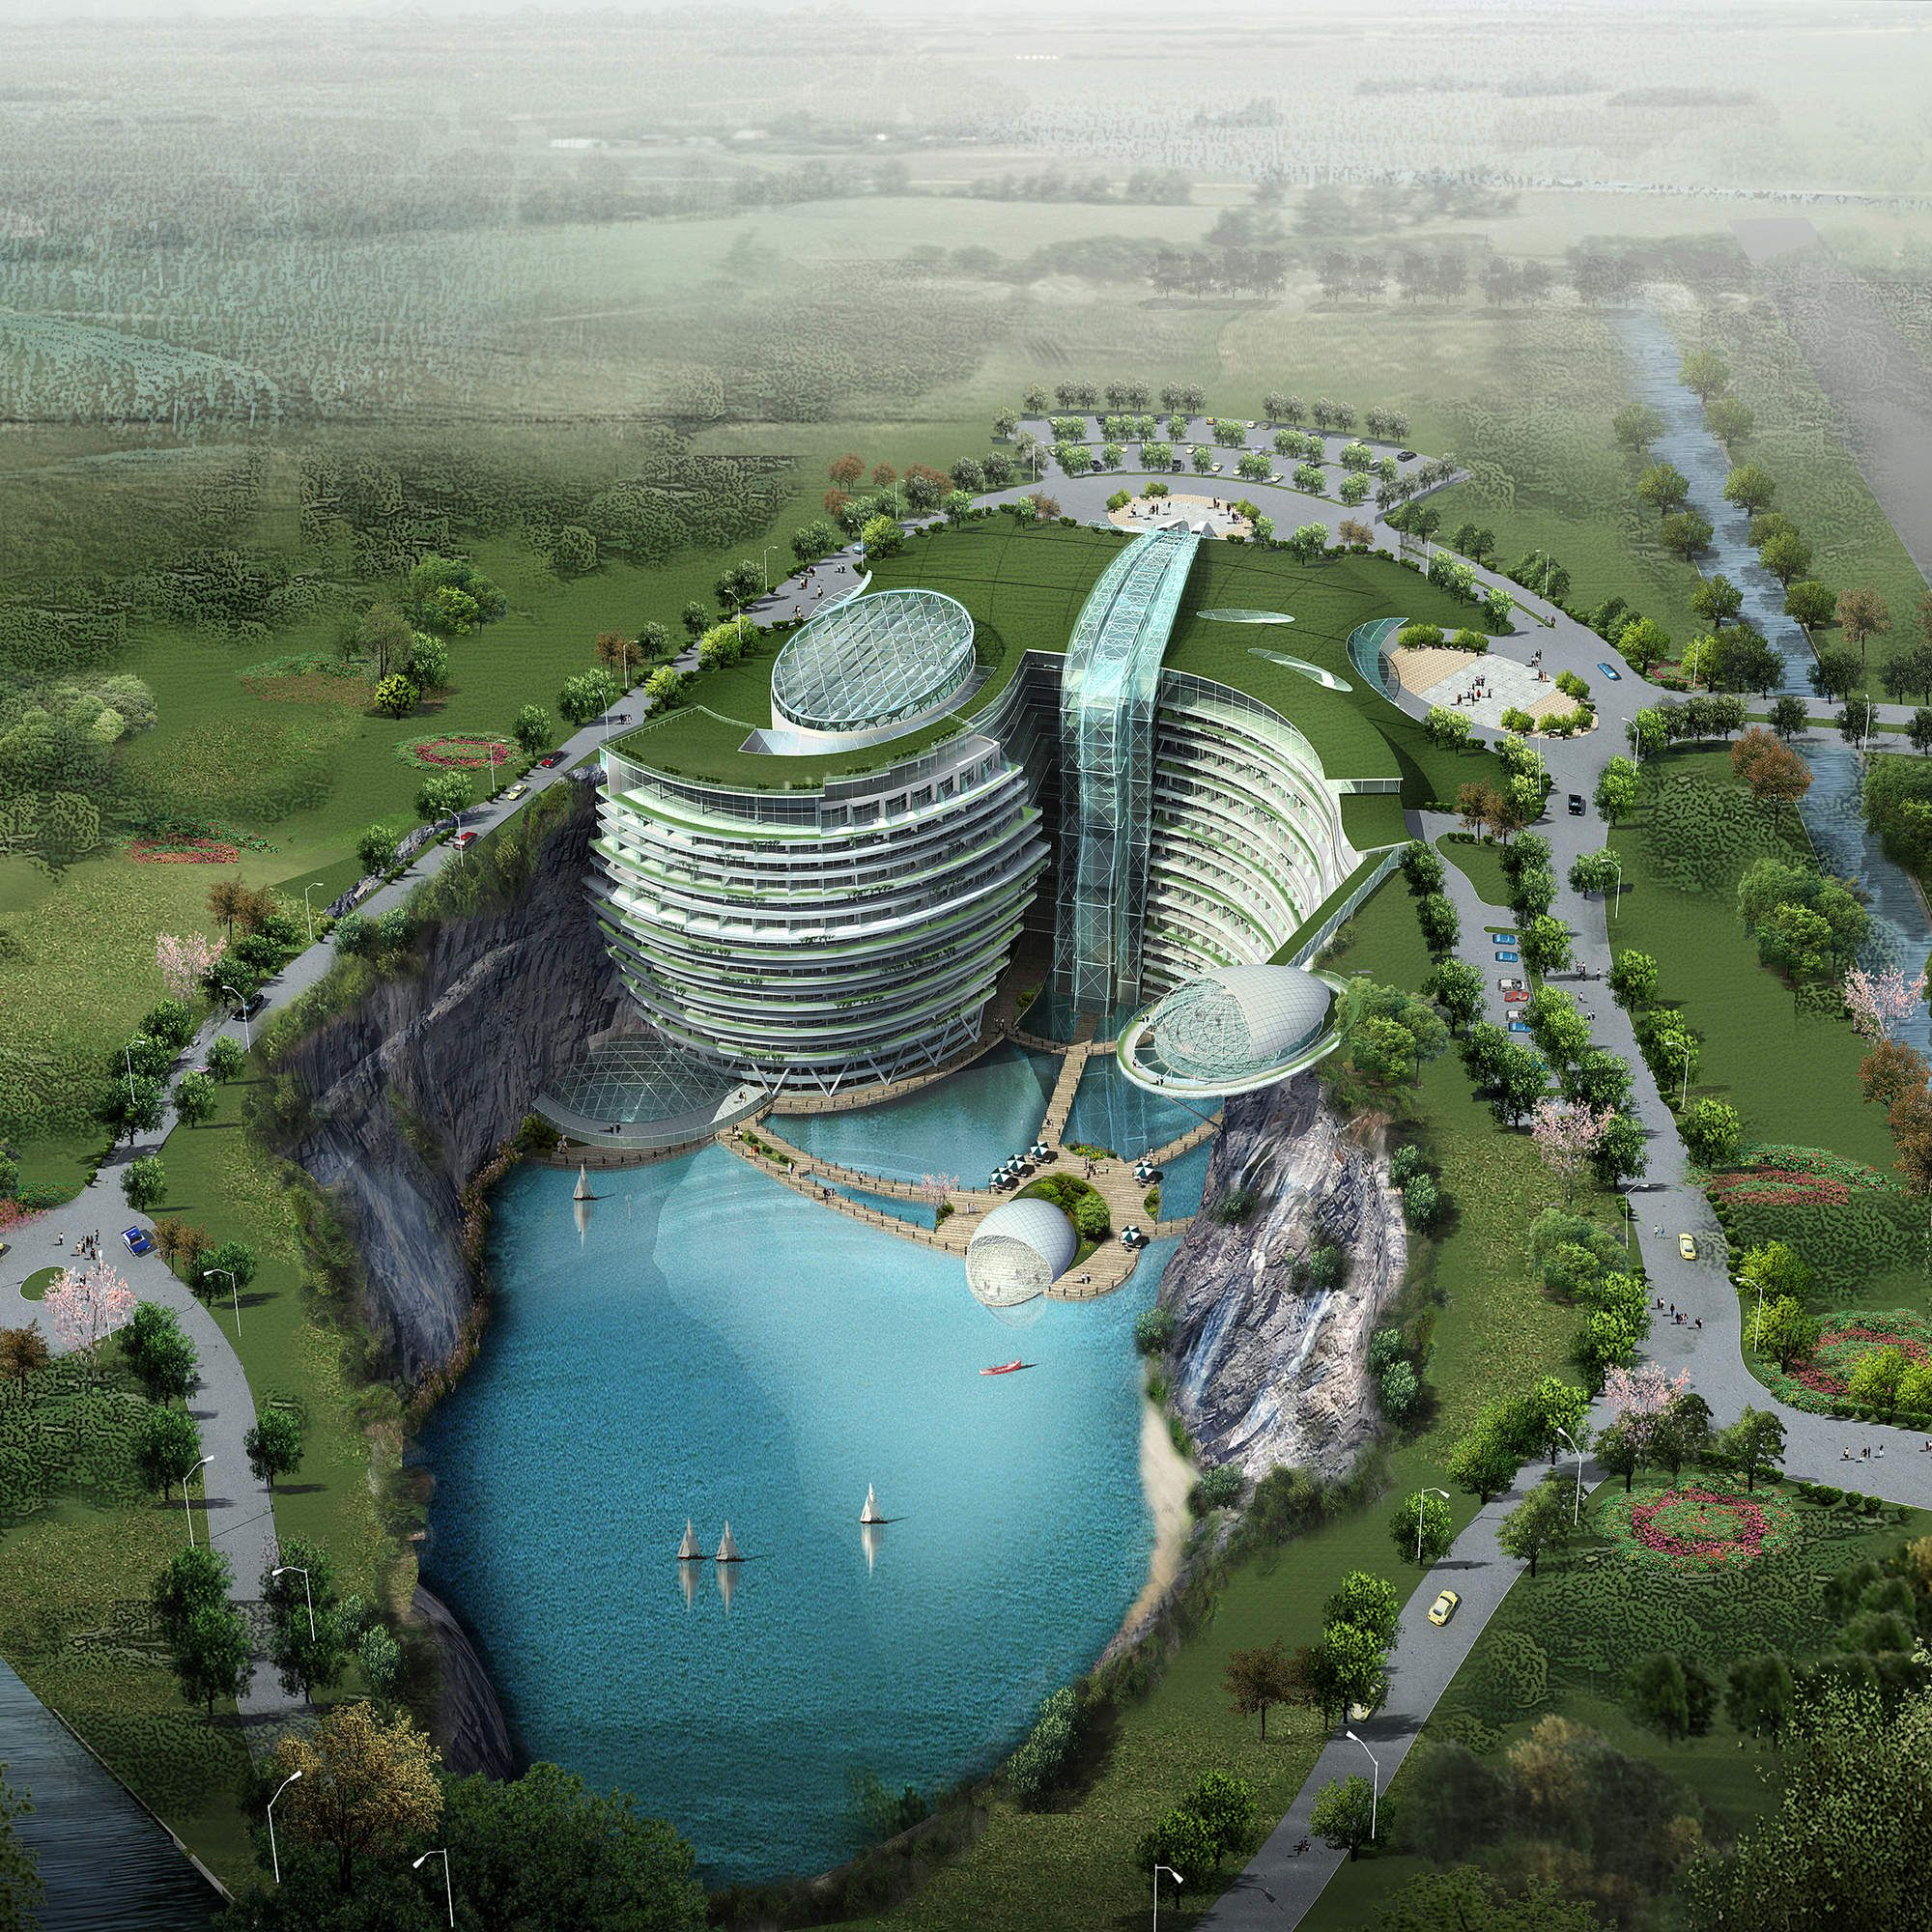 Shimao Wonderland InterContinental, outside of Shanghai, China - This futuristic underwater luxury hotel is being built in a quarry